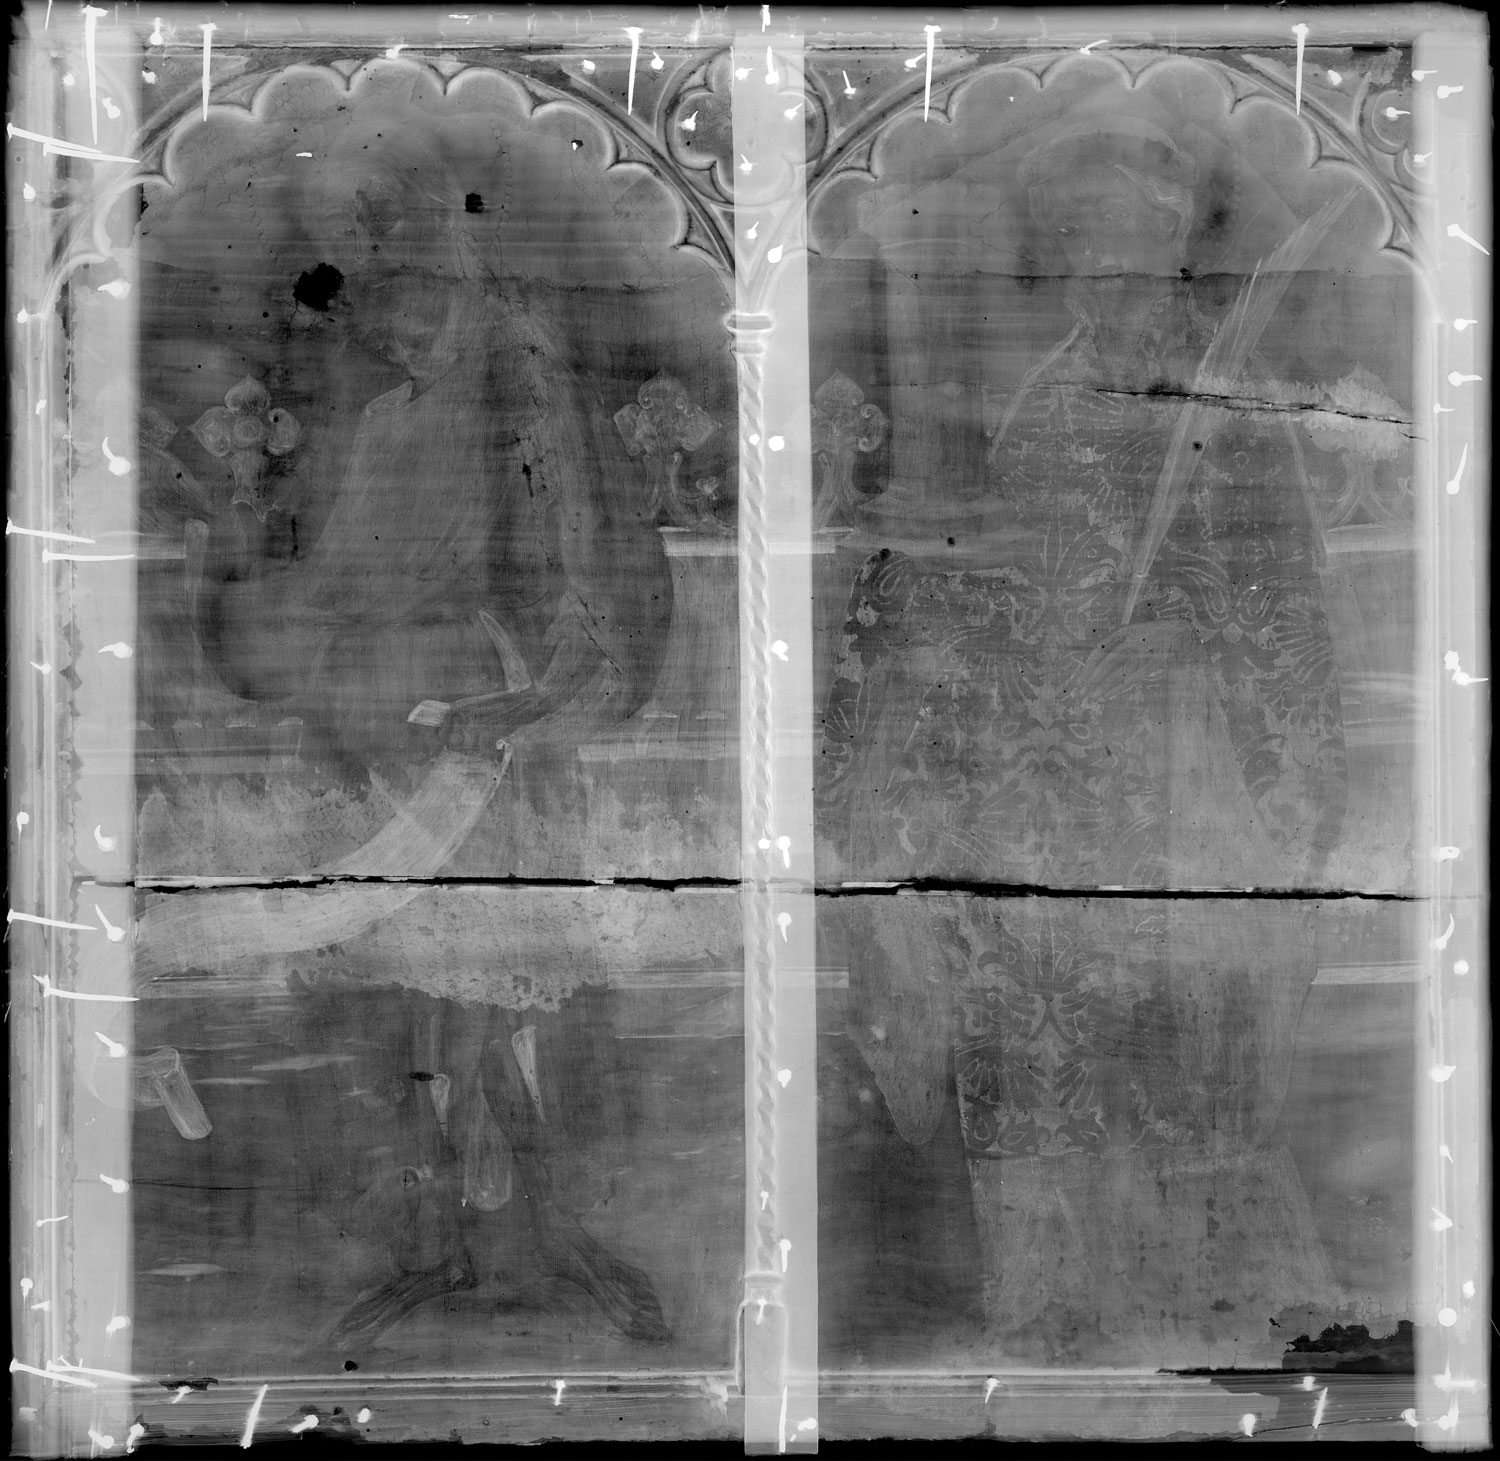 An X-ray of the Saint Barbara and Saint John panel highlights the horizontal seam between two slabs of wood. The crack aligns with the corresponding panel of Saint Catherine and Christ in the National Art Museum of Catalonia, suggesting the two panels were made from the same pieces of wood.